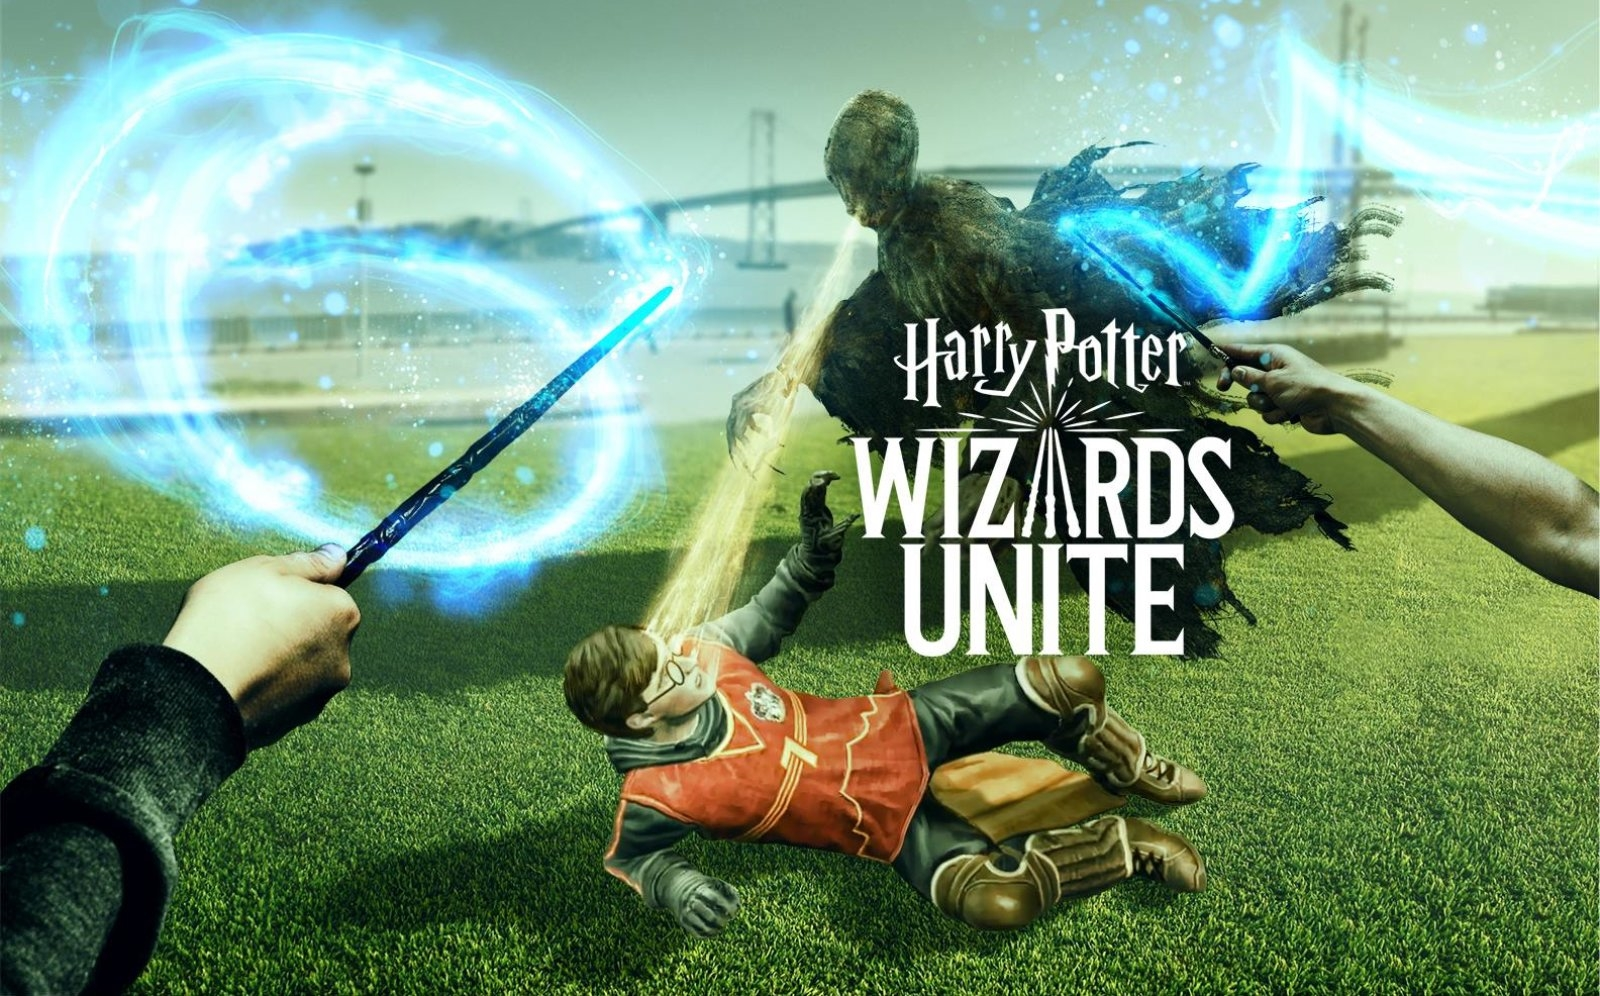 'Harry Potter: Wizards Unite' is now beta testing in Australia and NZ | DeviceDaily.com